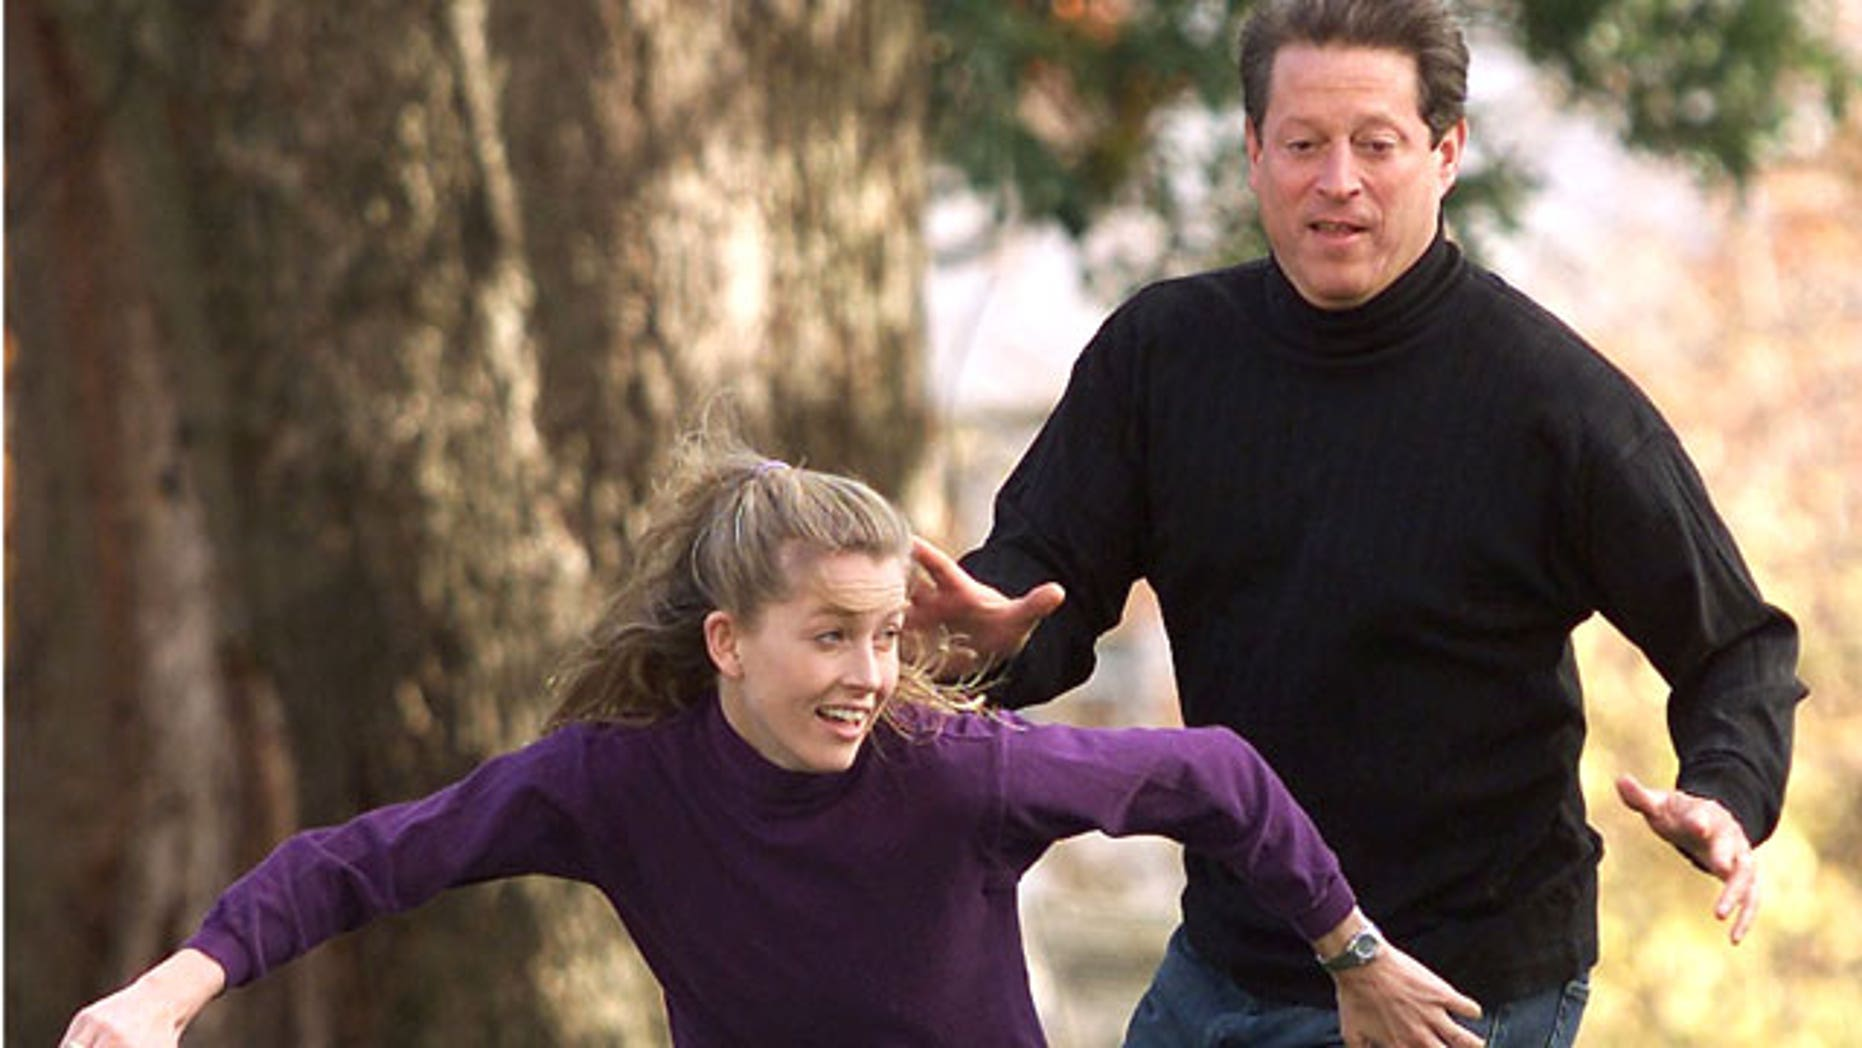 Vice President Al Gore covers his daughter Karenna on a pass play during a touch football game with his family, November 10, 2000 outside the Vice Presidential residence in Washington. (Reuters)